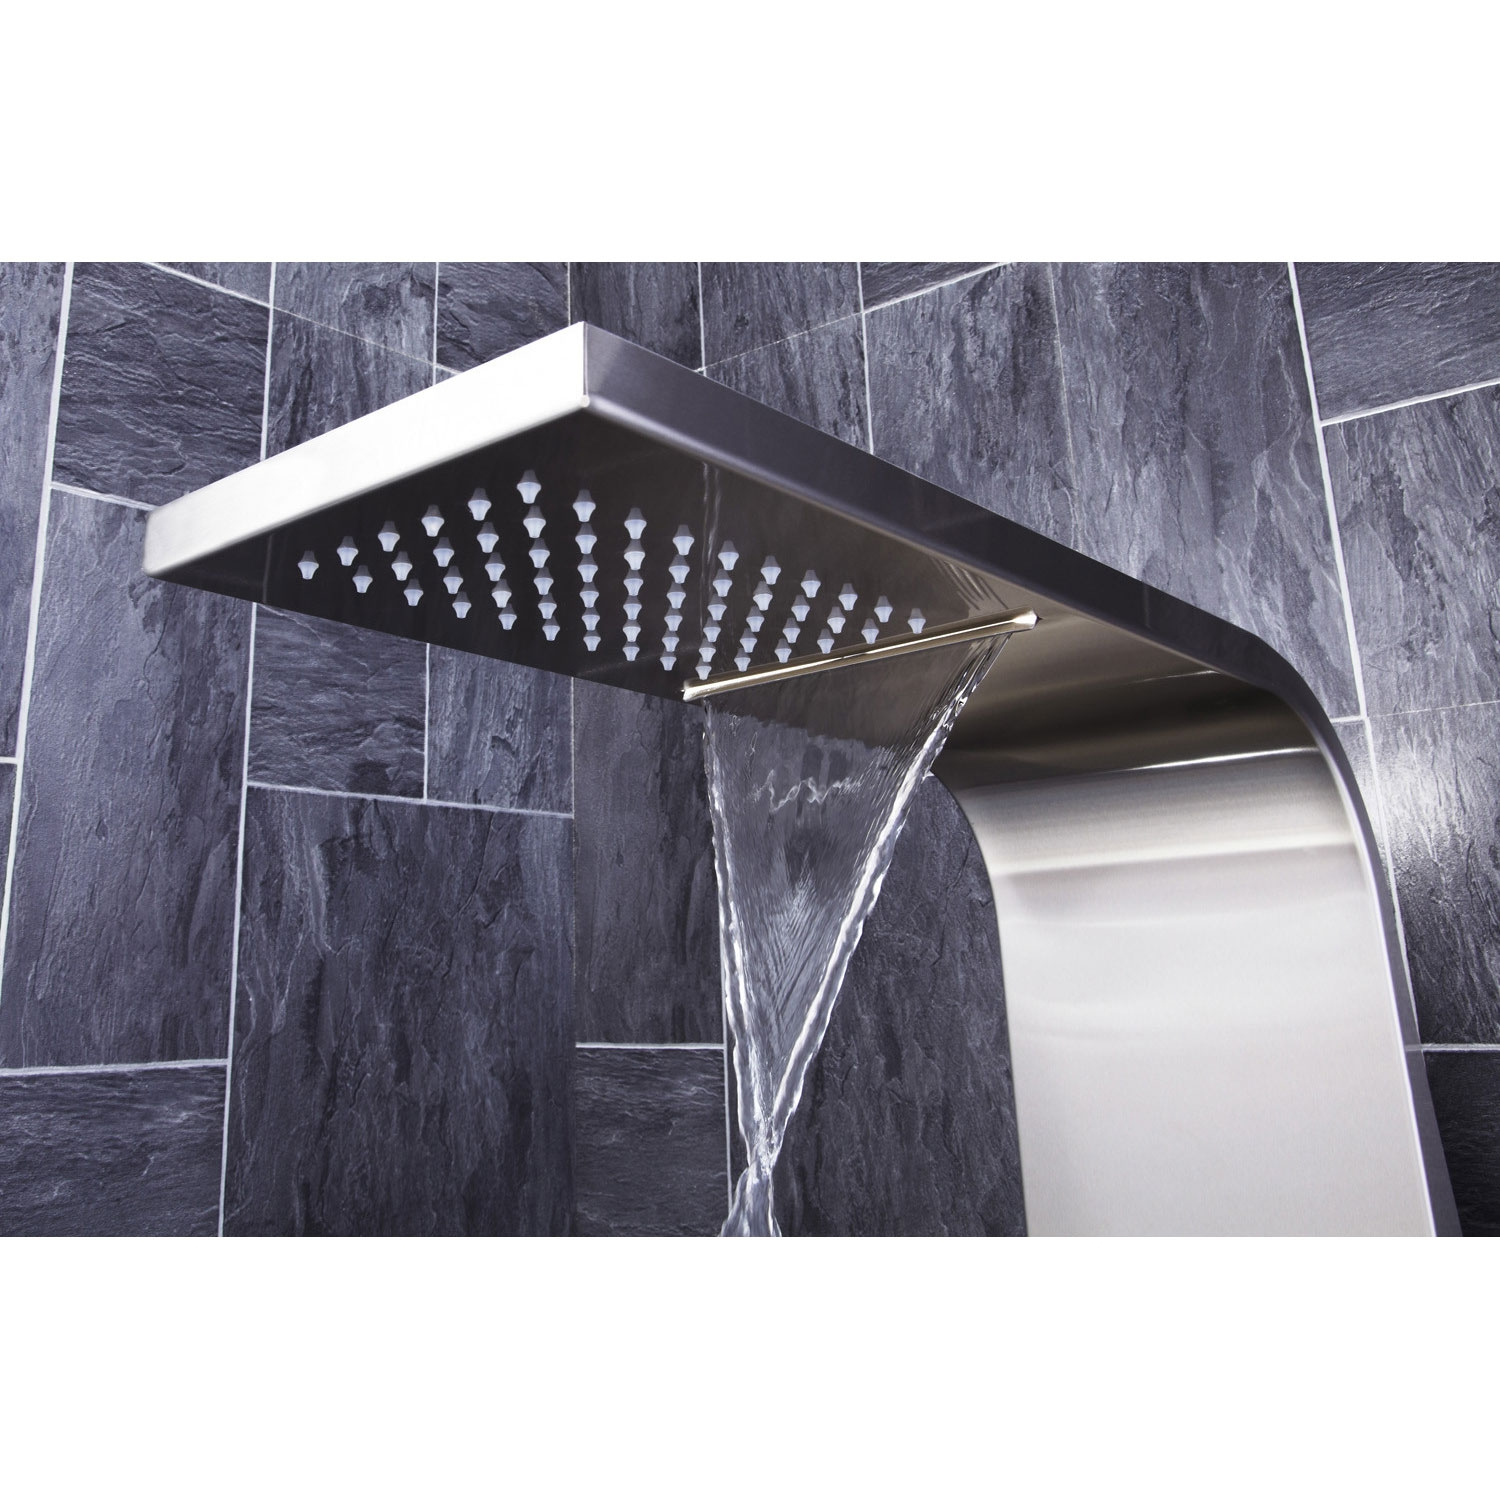 Verona Modo Thermostatic Shower Panel 2 Built-in Body Jets with Shower Hand-3